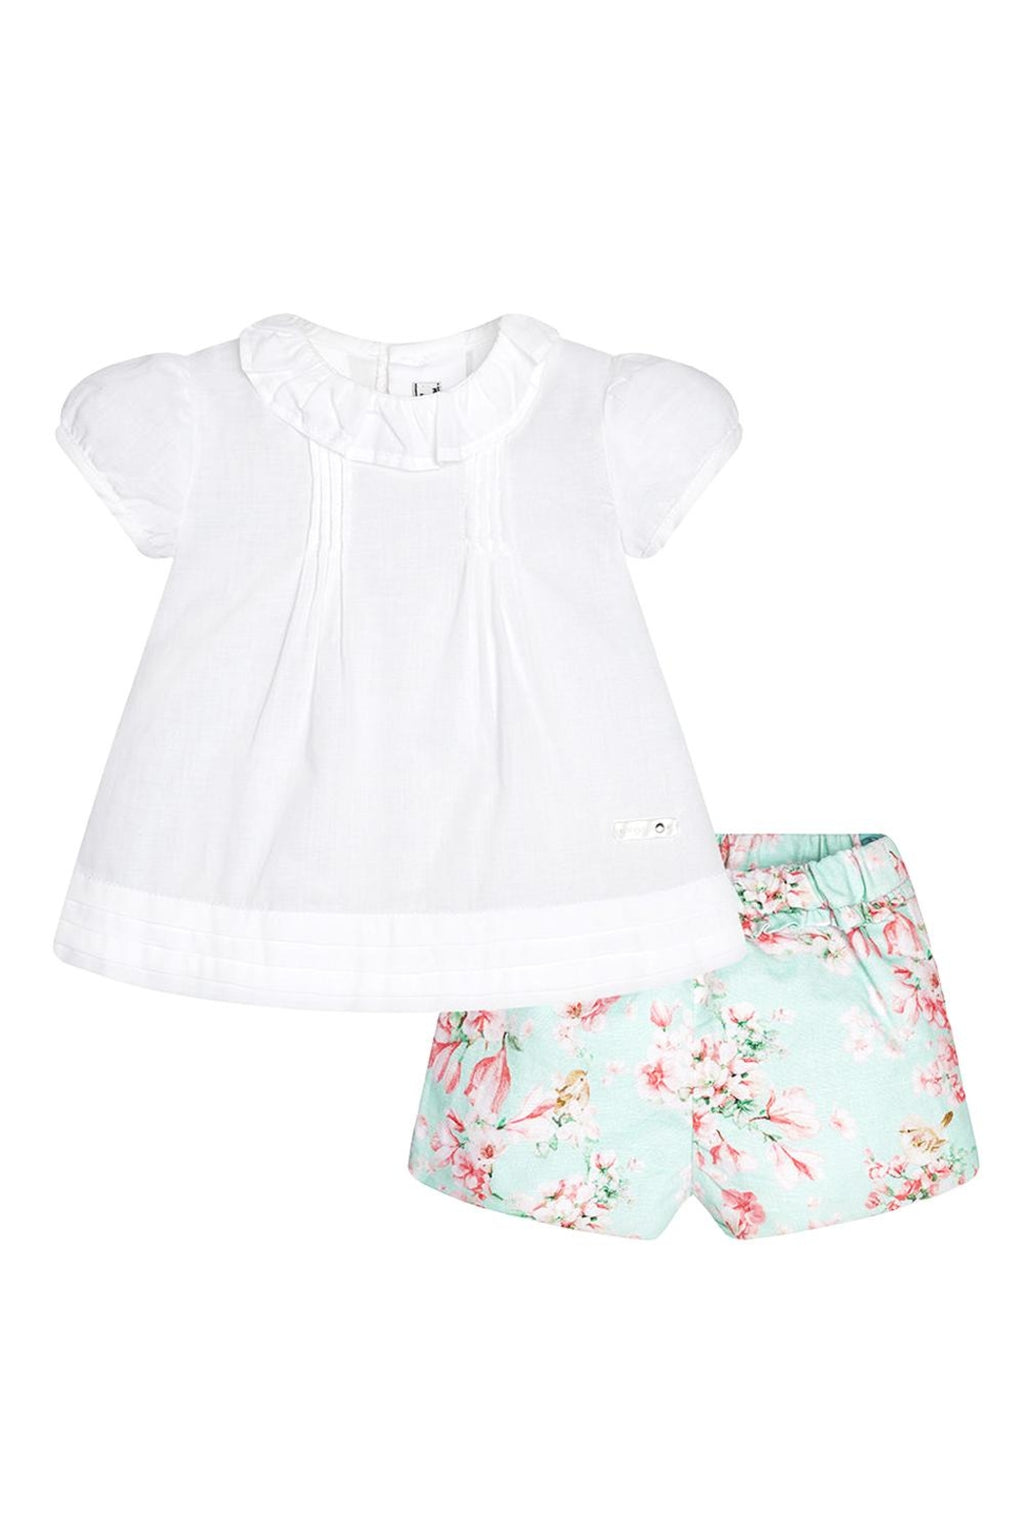 Blouse & Aquamarine Floral 2-Piece Short Set